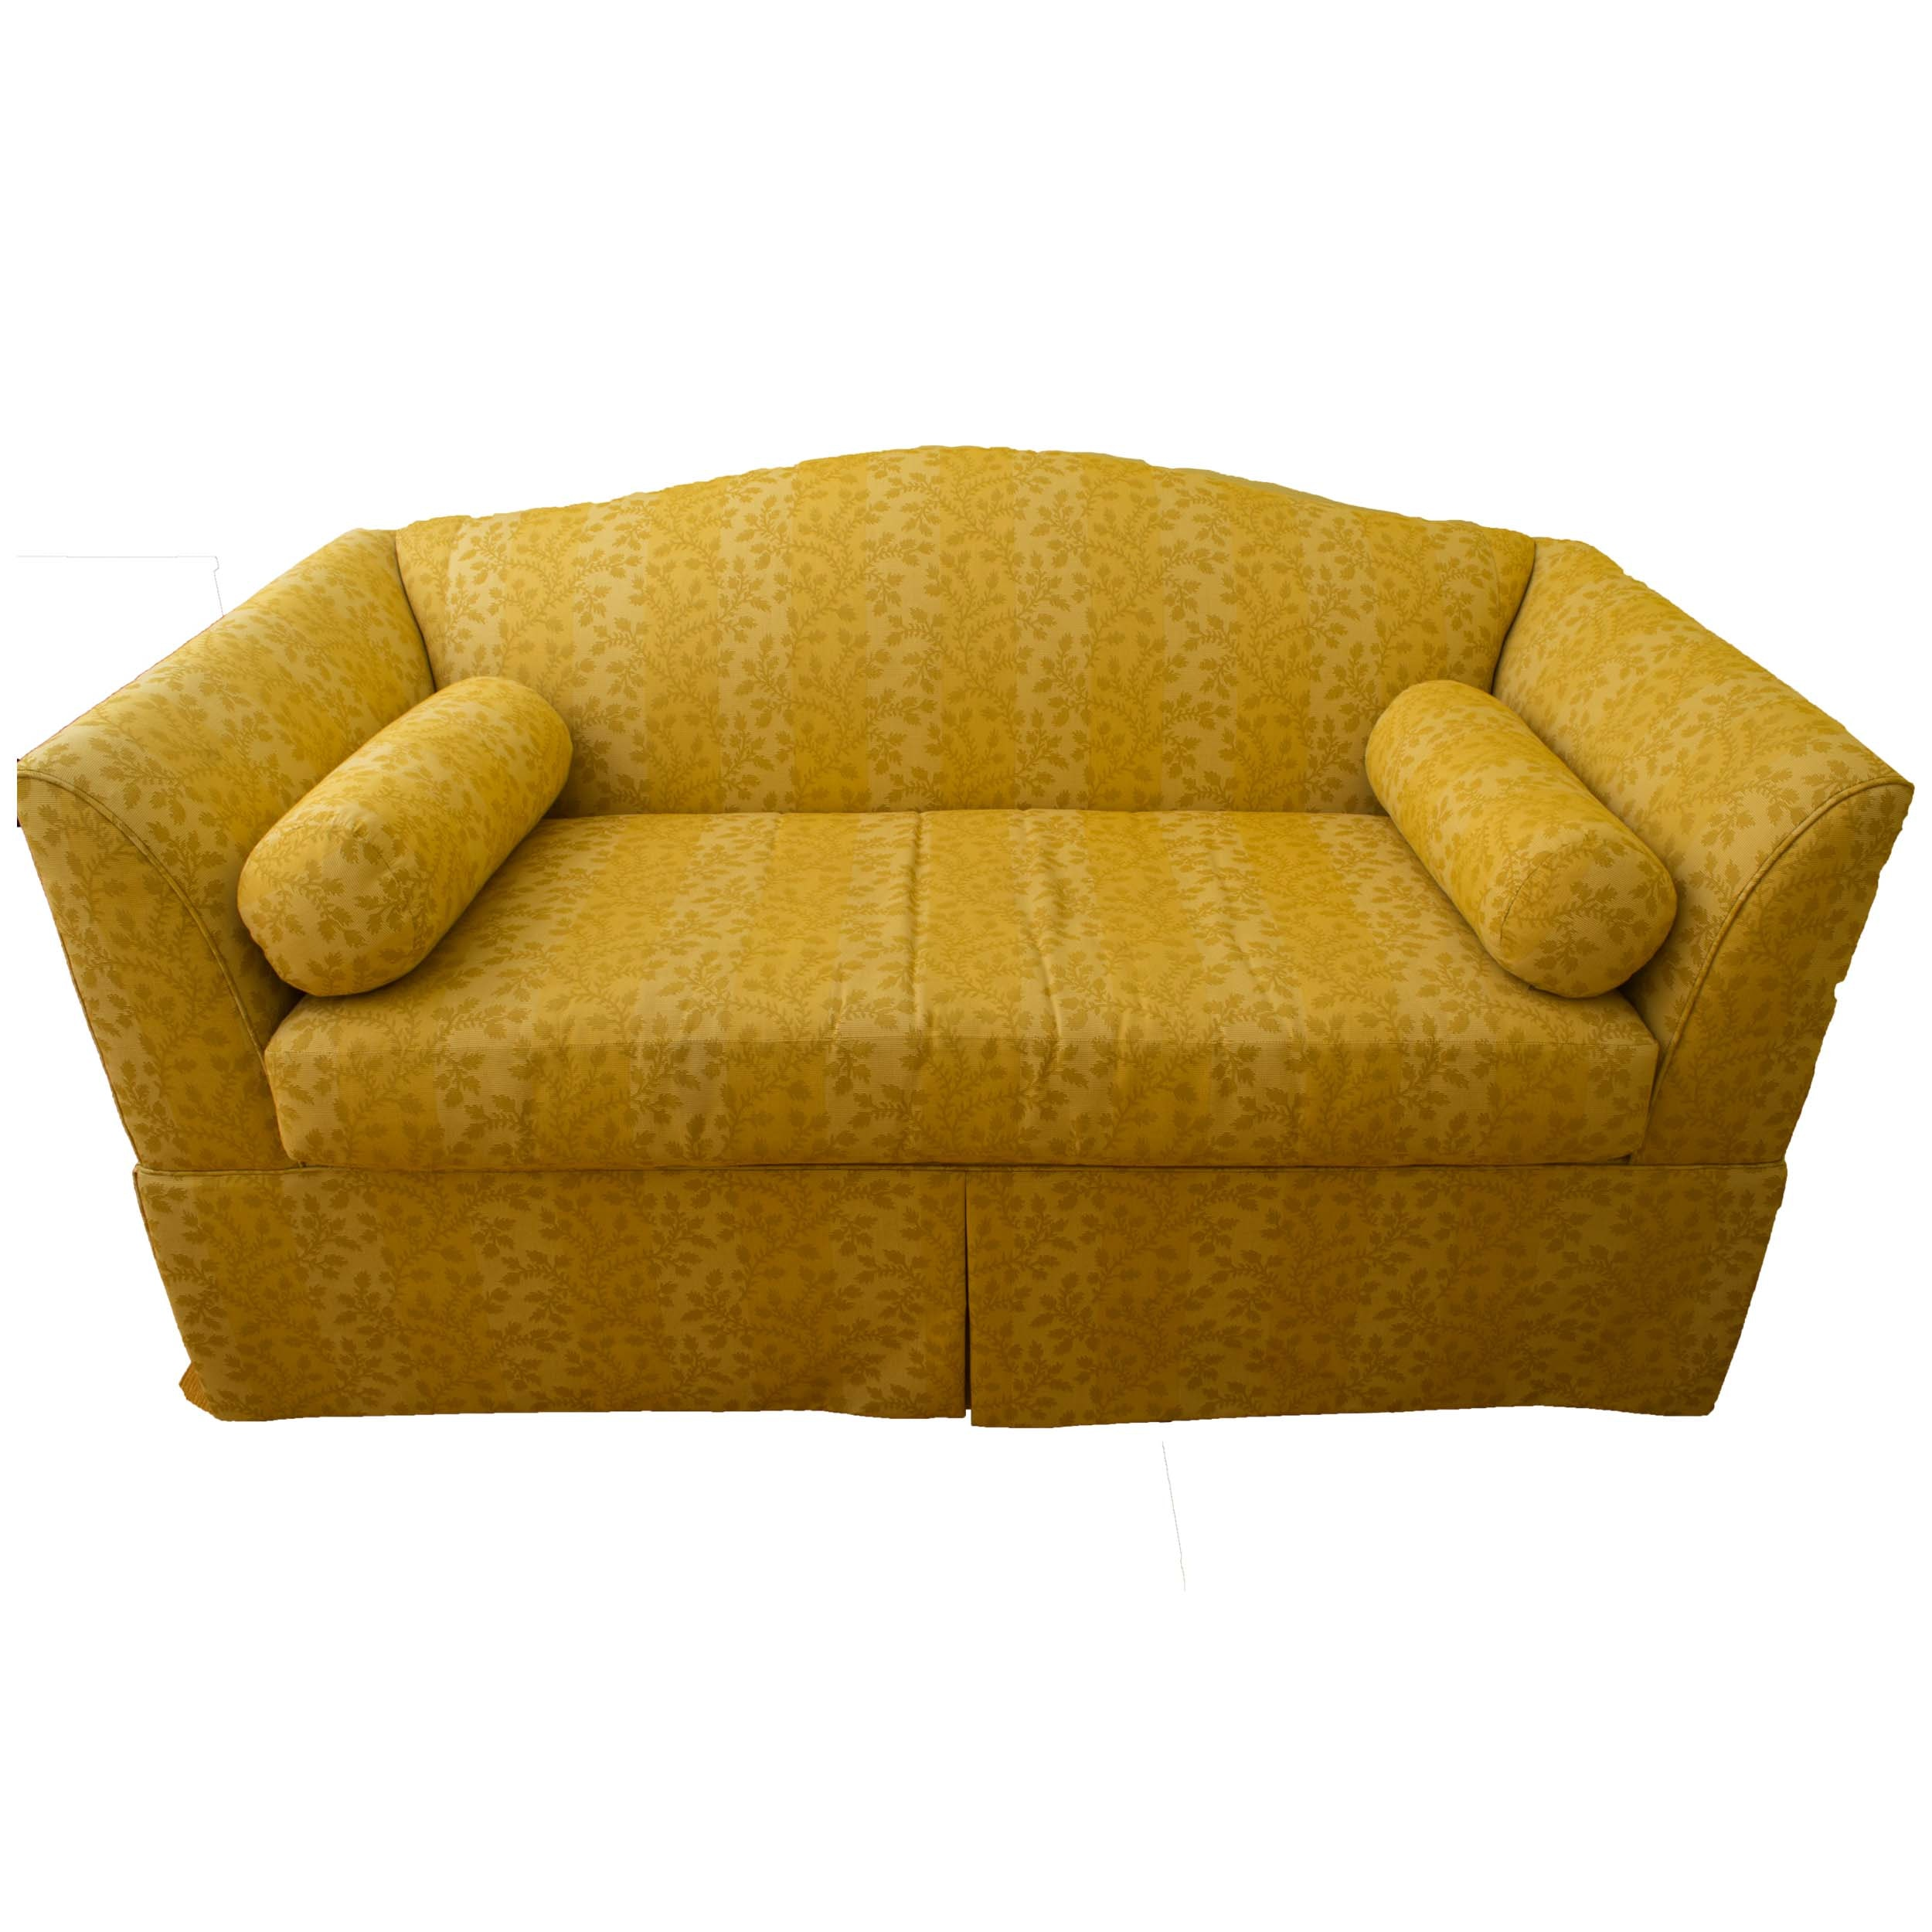 Upholstered Loveseat by Kravet Furniture